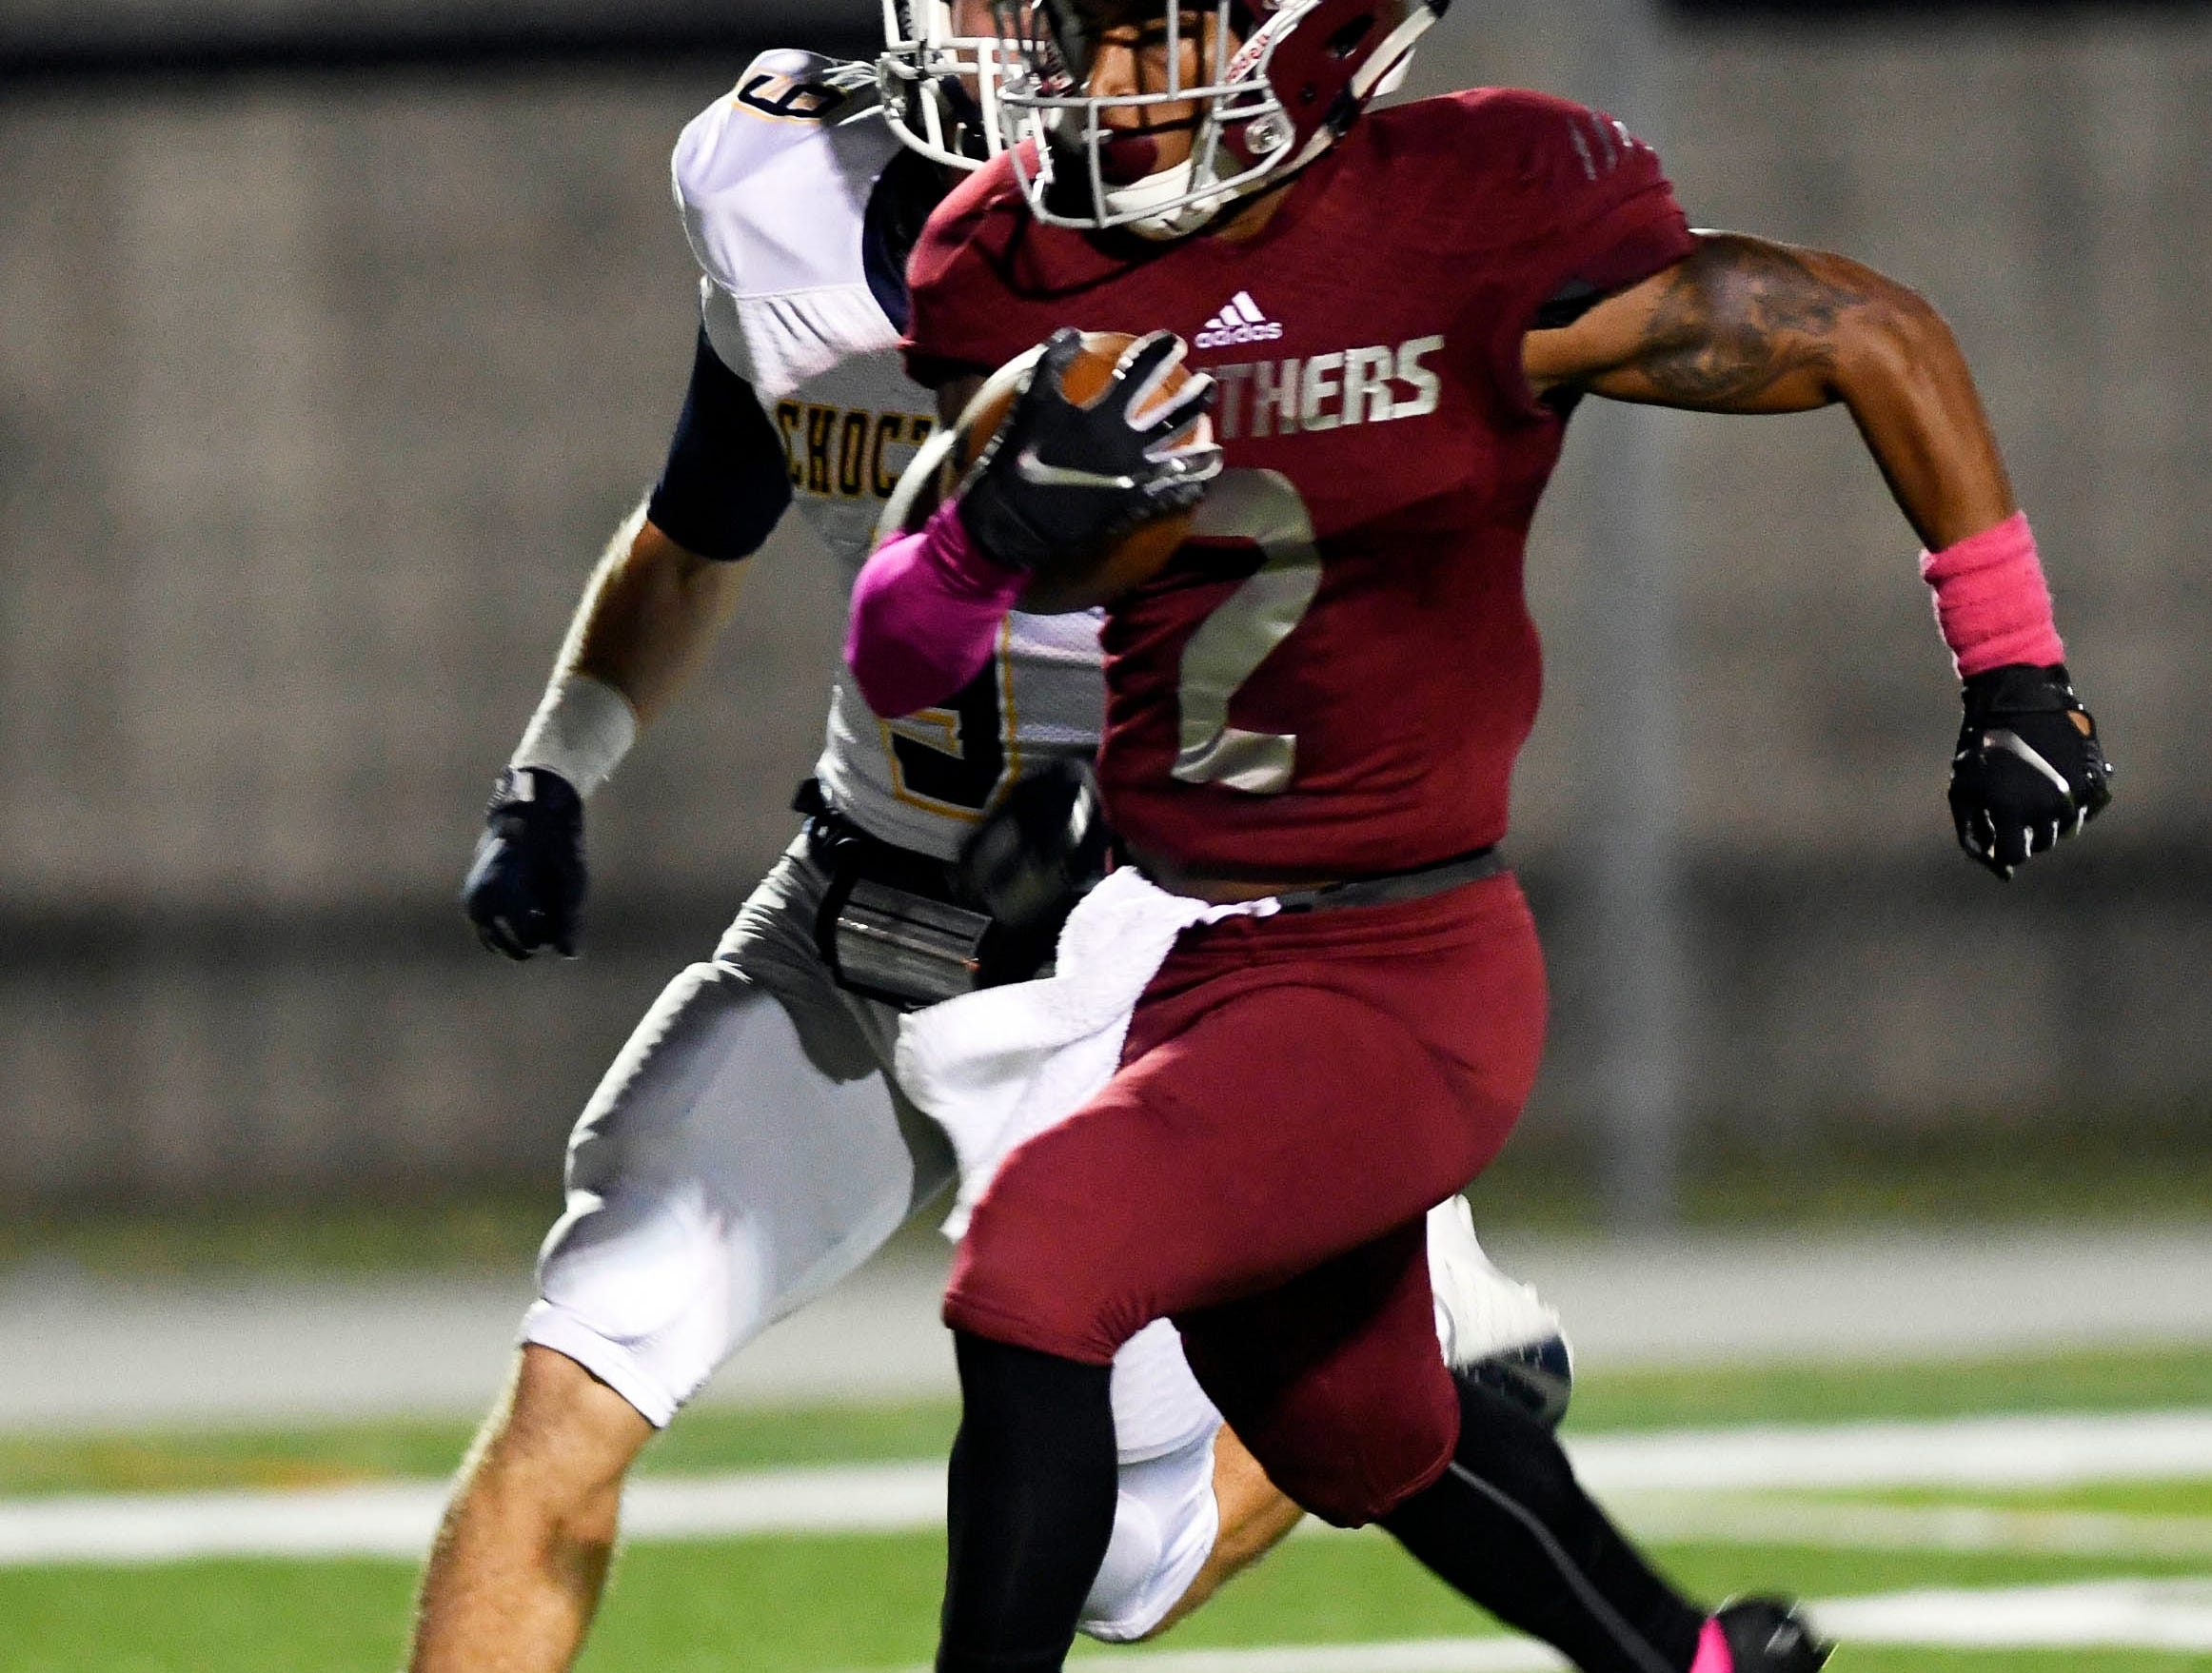 Brian Spurgeon of Florida Tech races down the field pursued by Turner Rotenberry of Mississippi College during Saturday's game at Panther Stadium